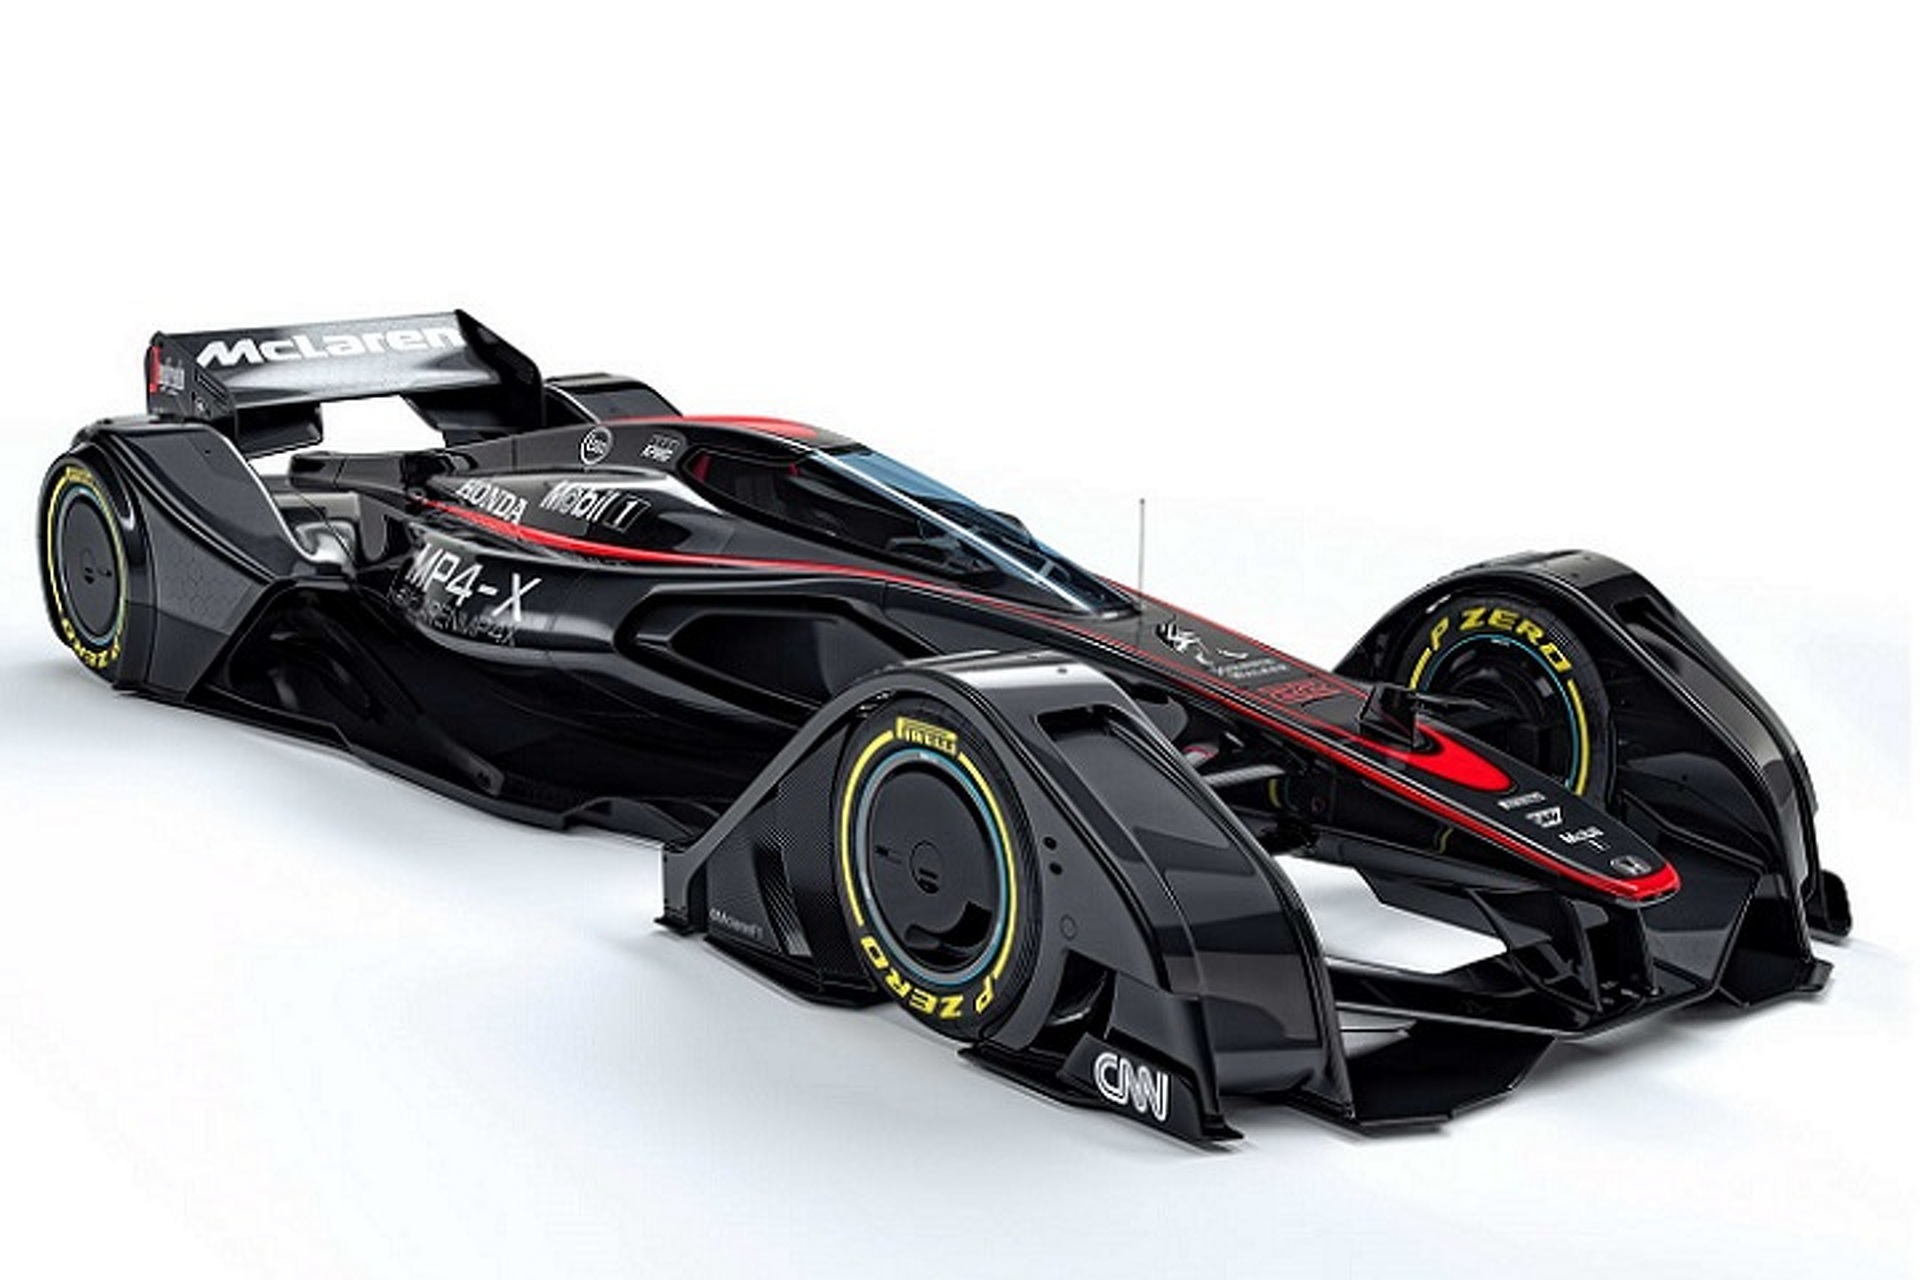 McLaren MP4X Is a Formula 1 Car From the Future